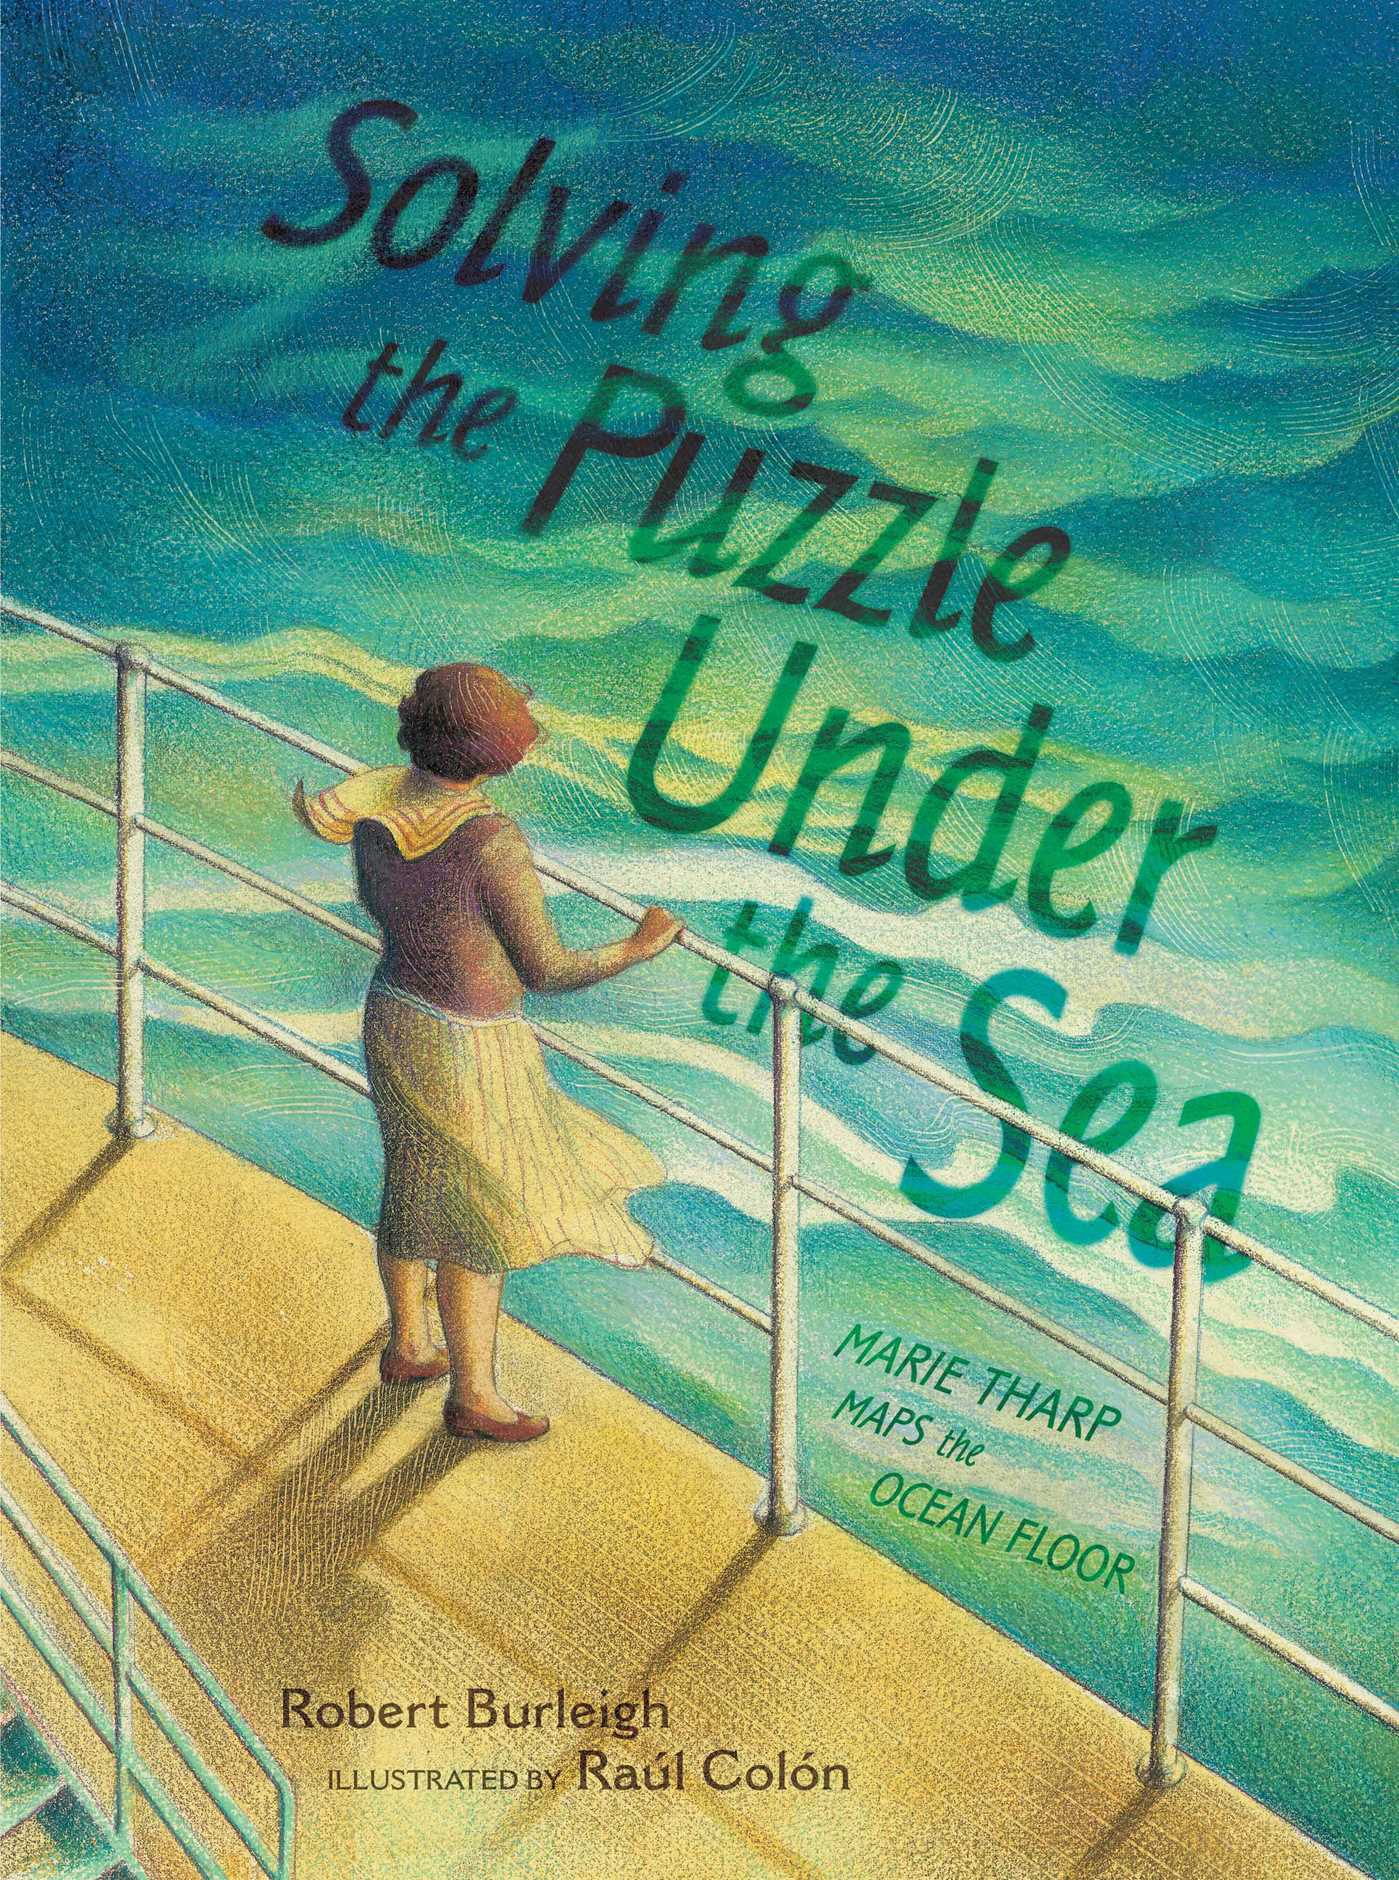 Solving the puzzle under the sea 9781481416009 hr